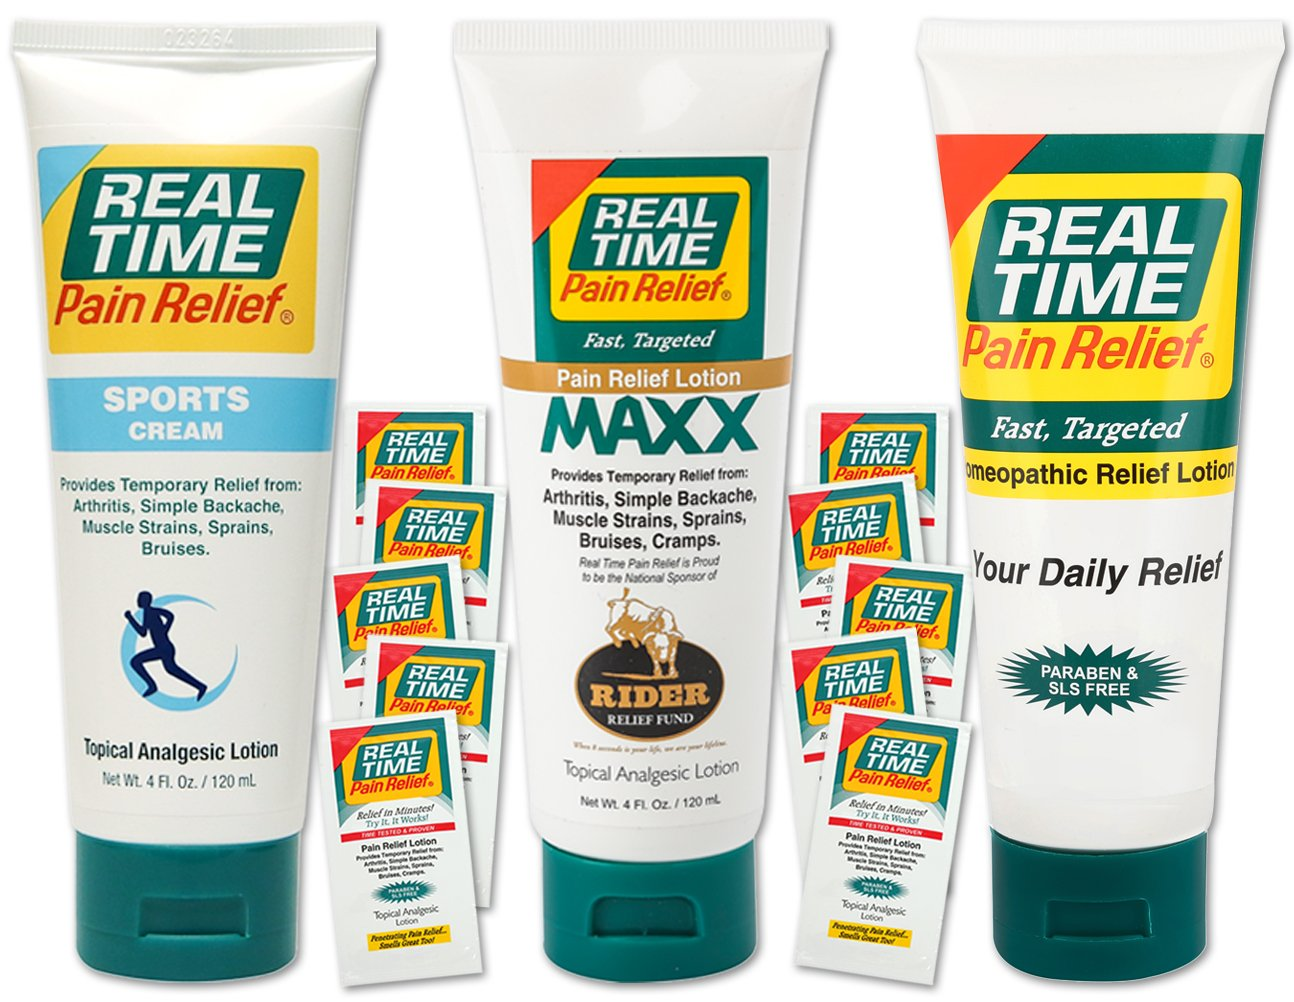 Real Time Pain Relief Stay Active Pack, Sports Cream, Daily Relief, MAXX Relief, 10 Pain Cream Travel Packs